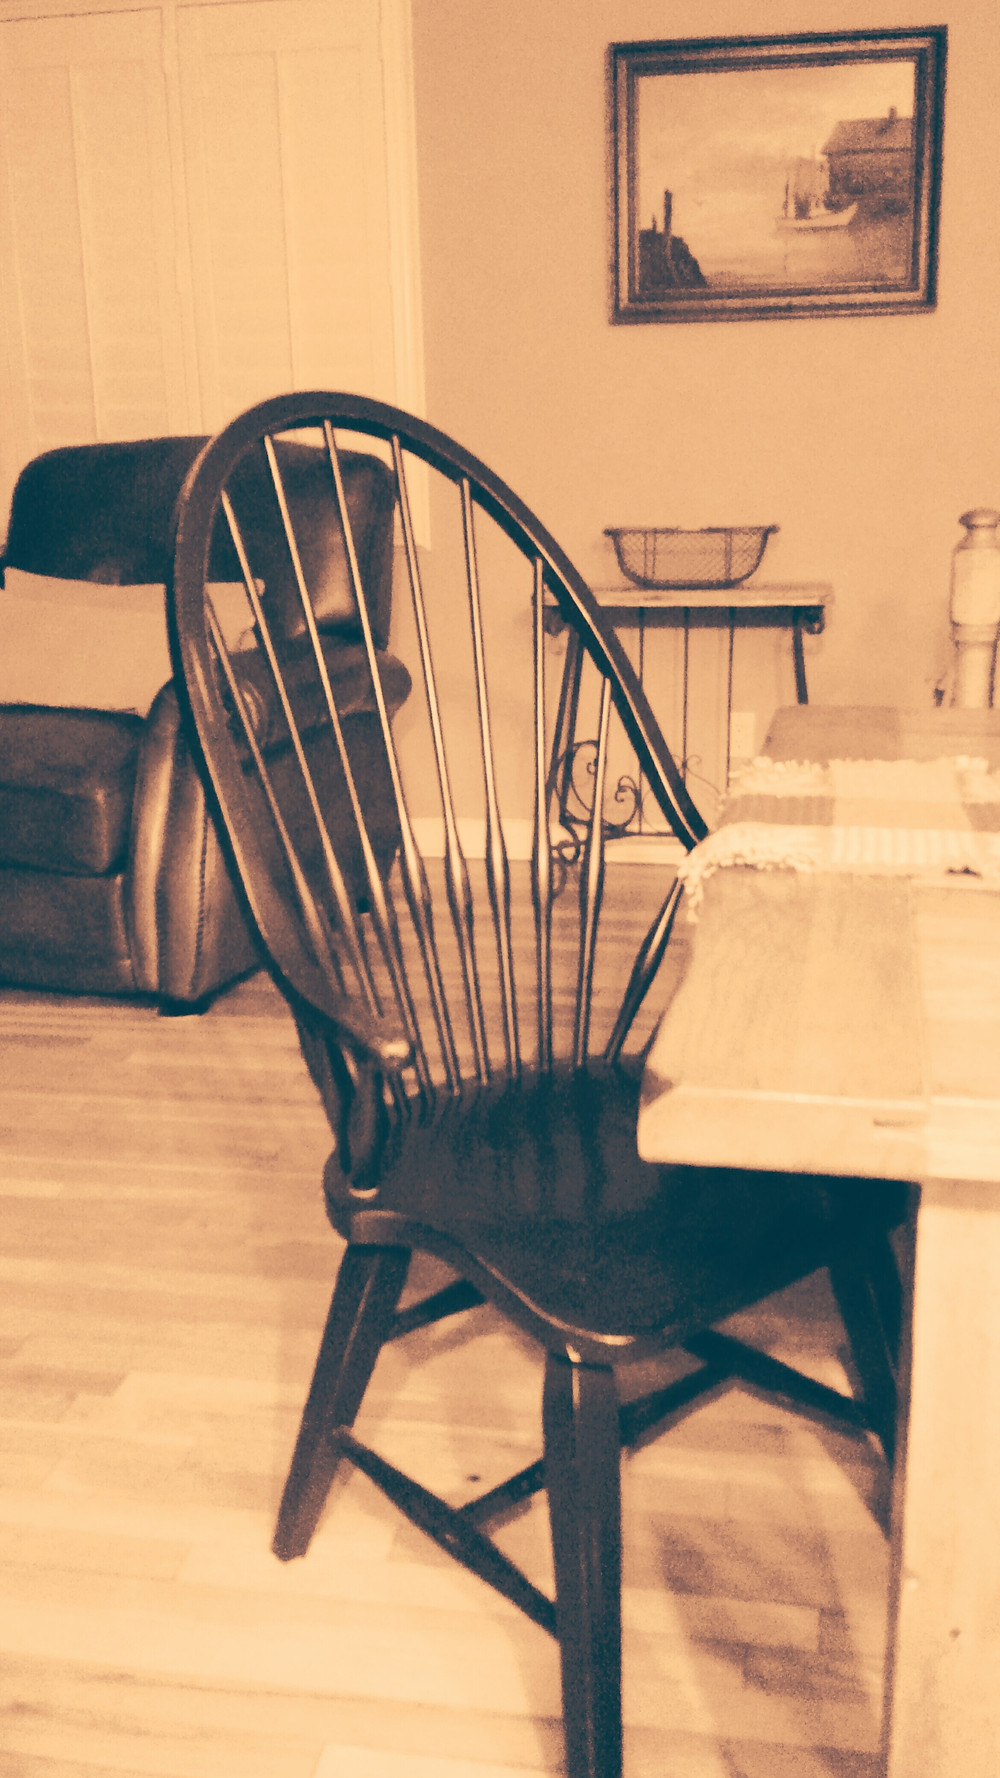 grief caused by an empty chair at a holiday table